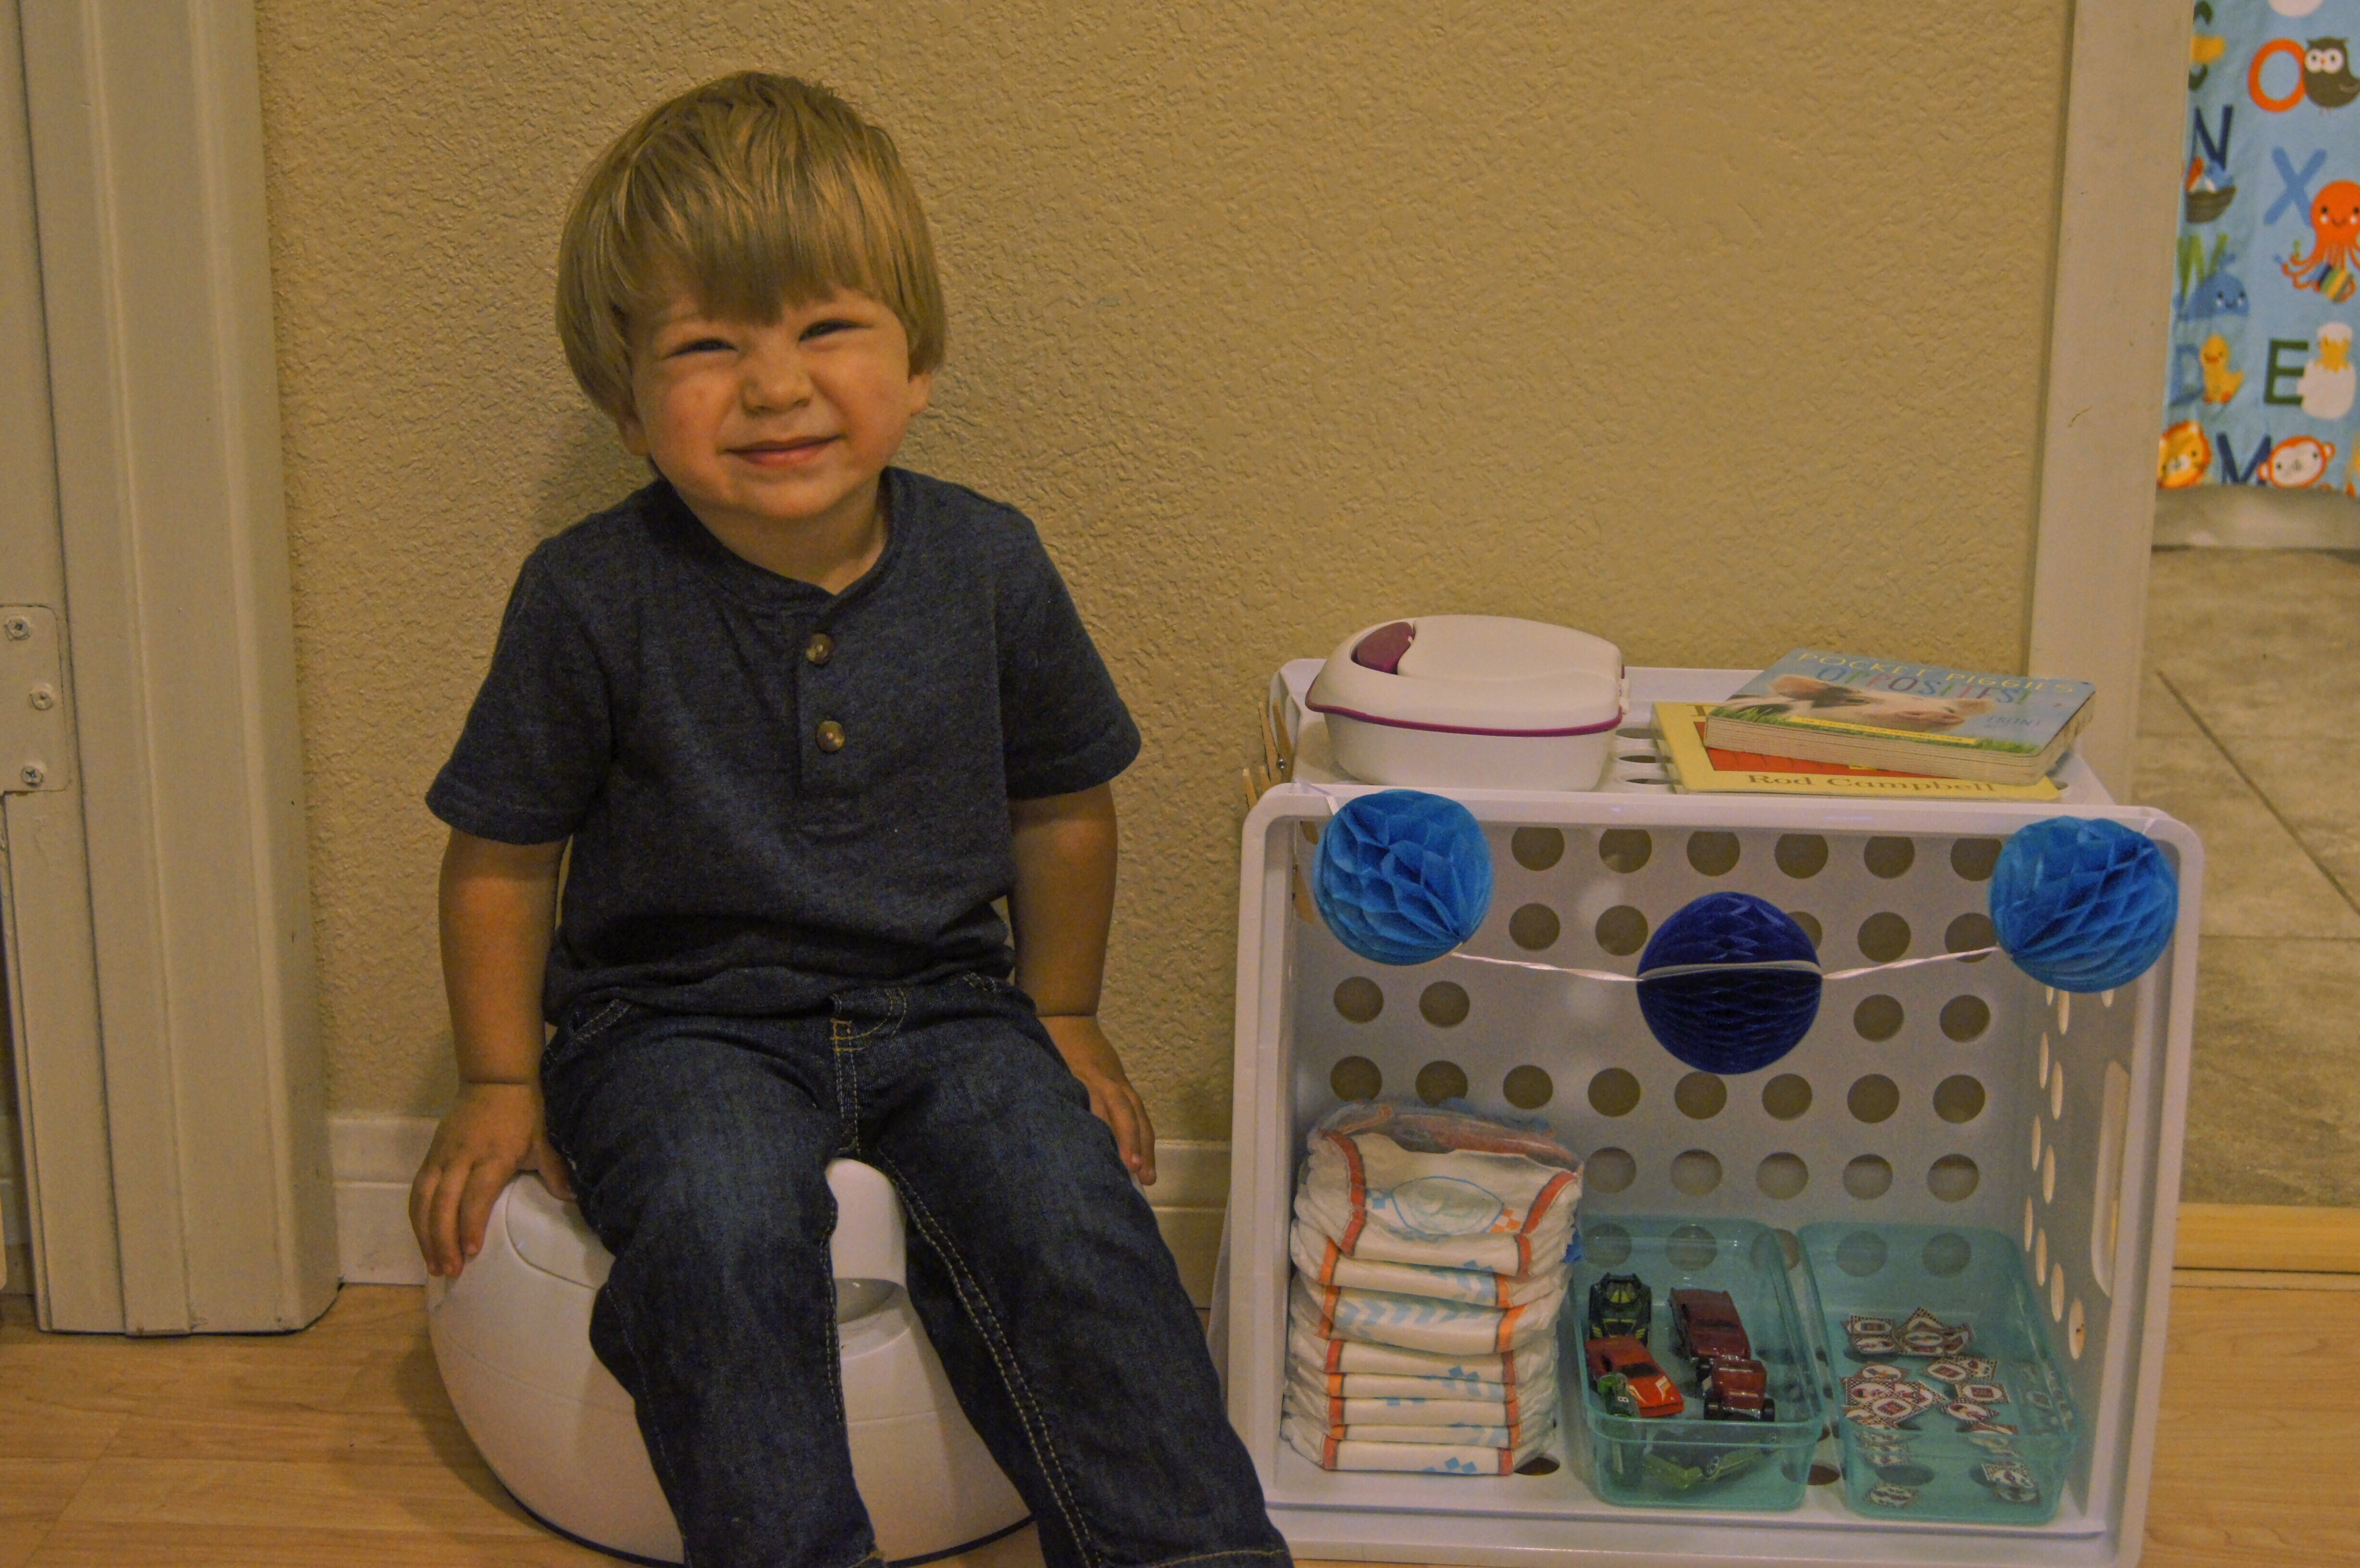 make potty training fun a diy potty training station make potty training fun a diy potty training station printable potty chart not quite susie homemaker